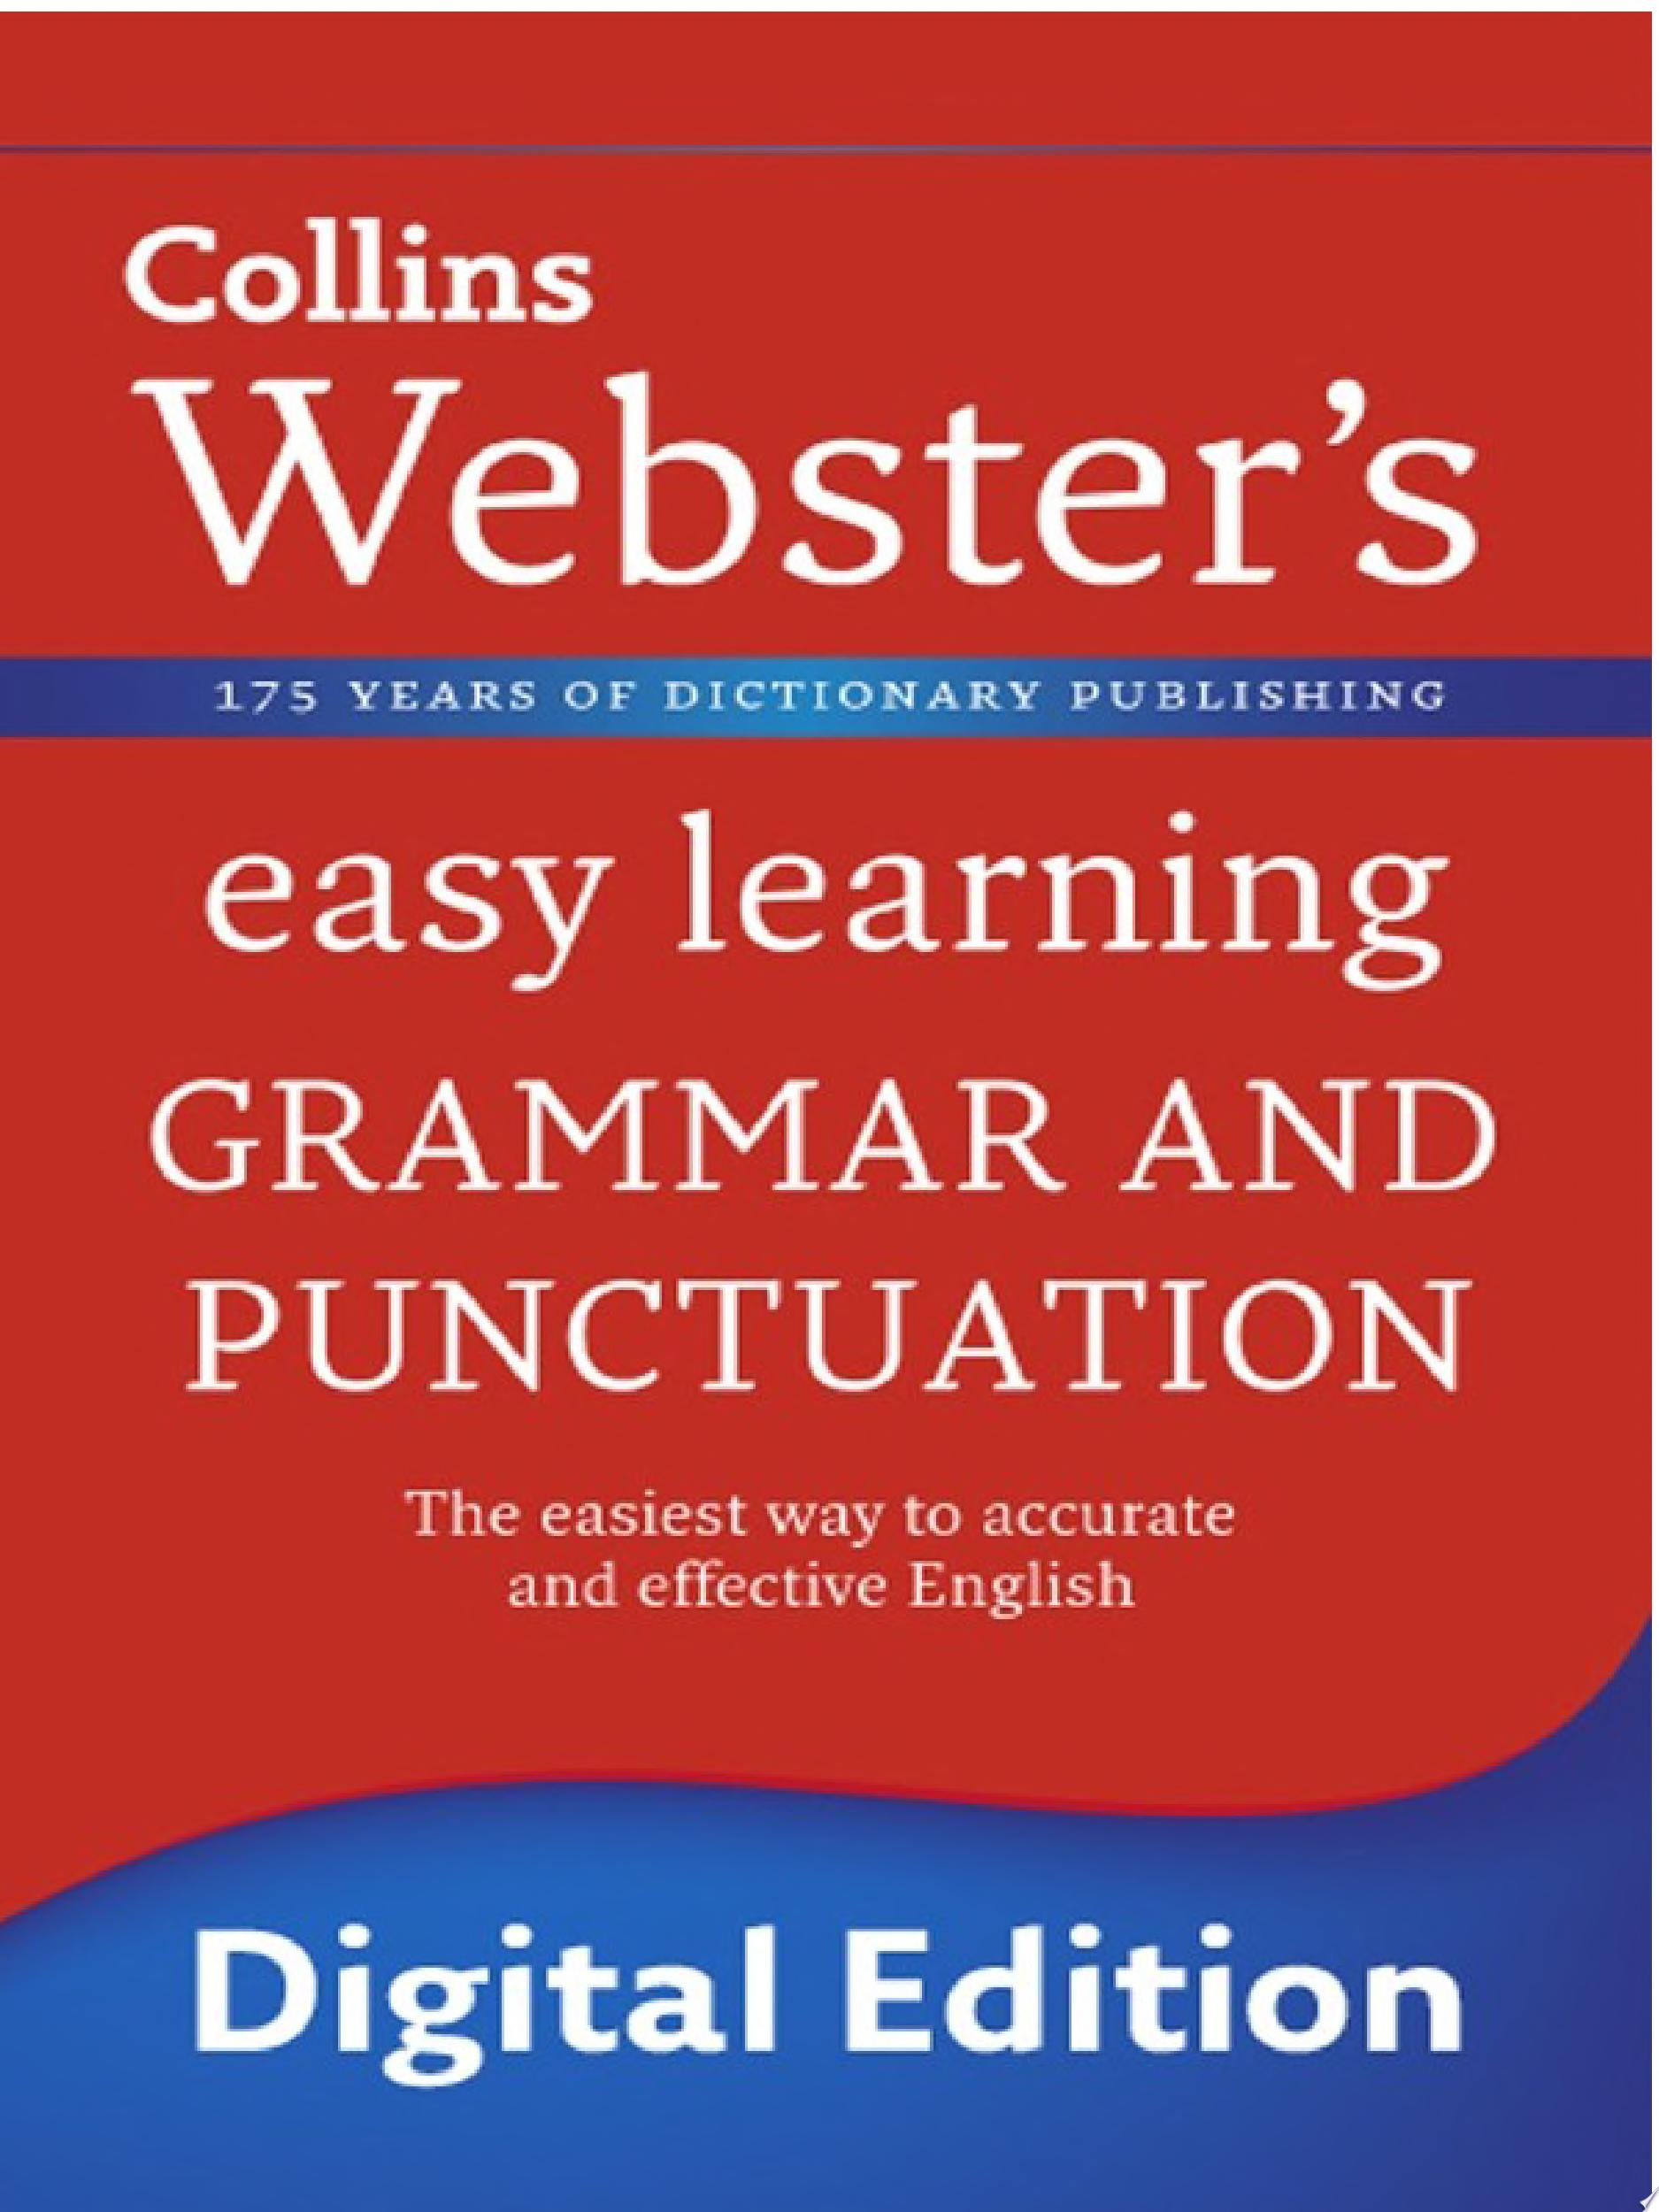 Grammar and Punctuation  Collins Webster   s Easy Learning